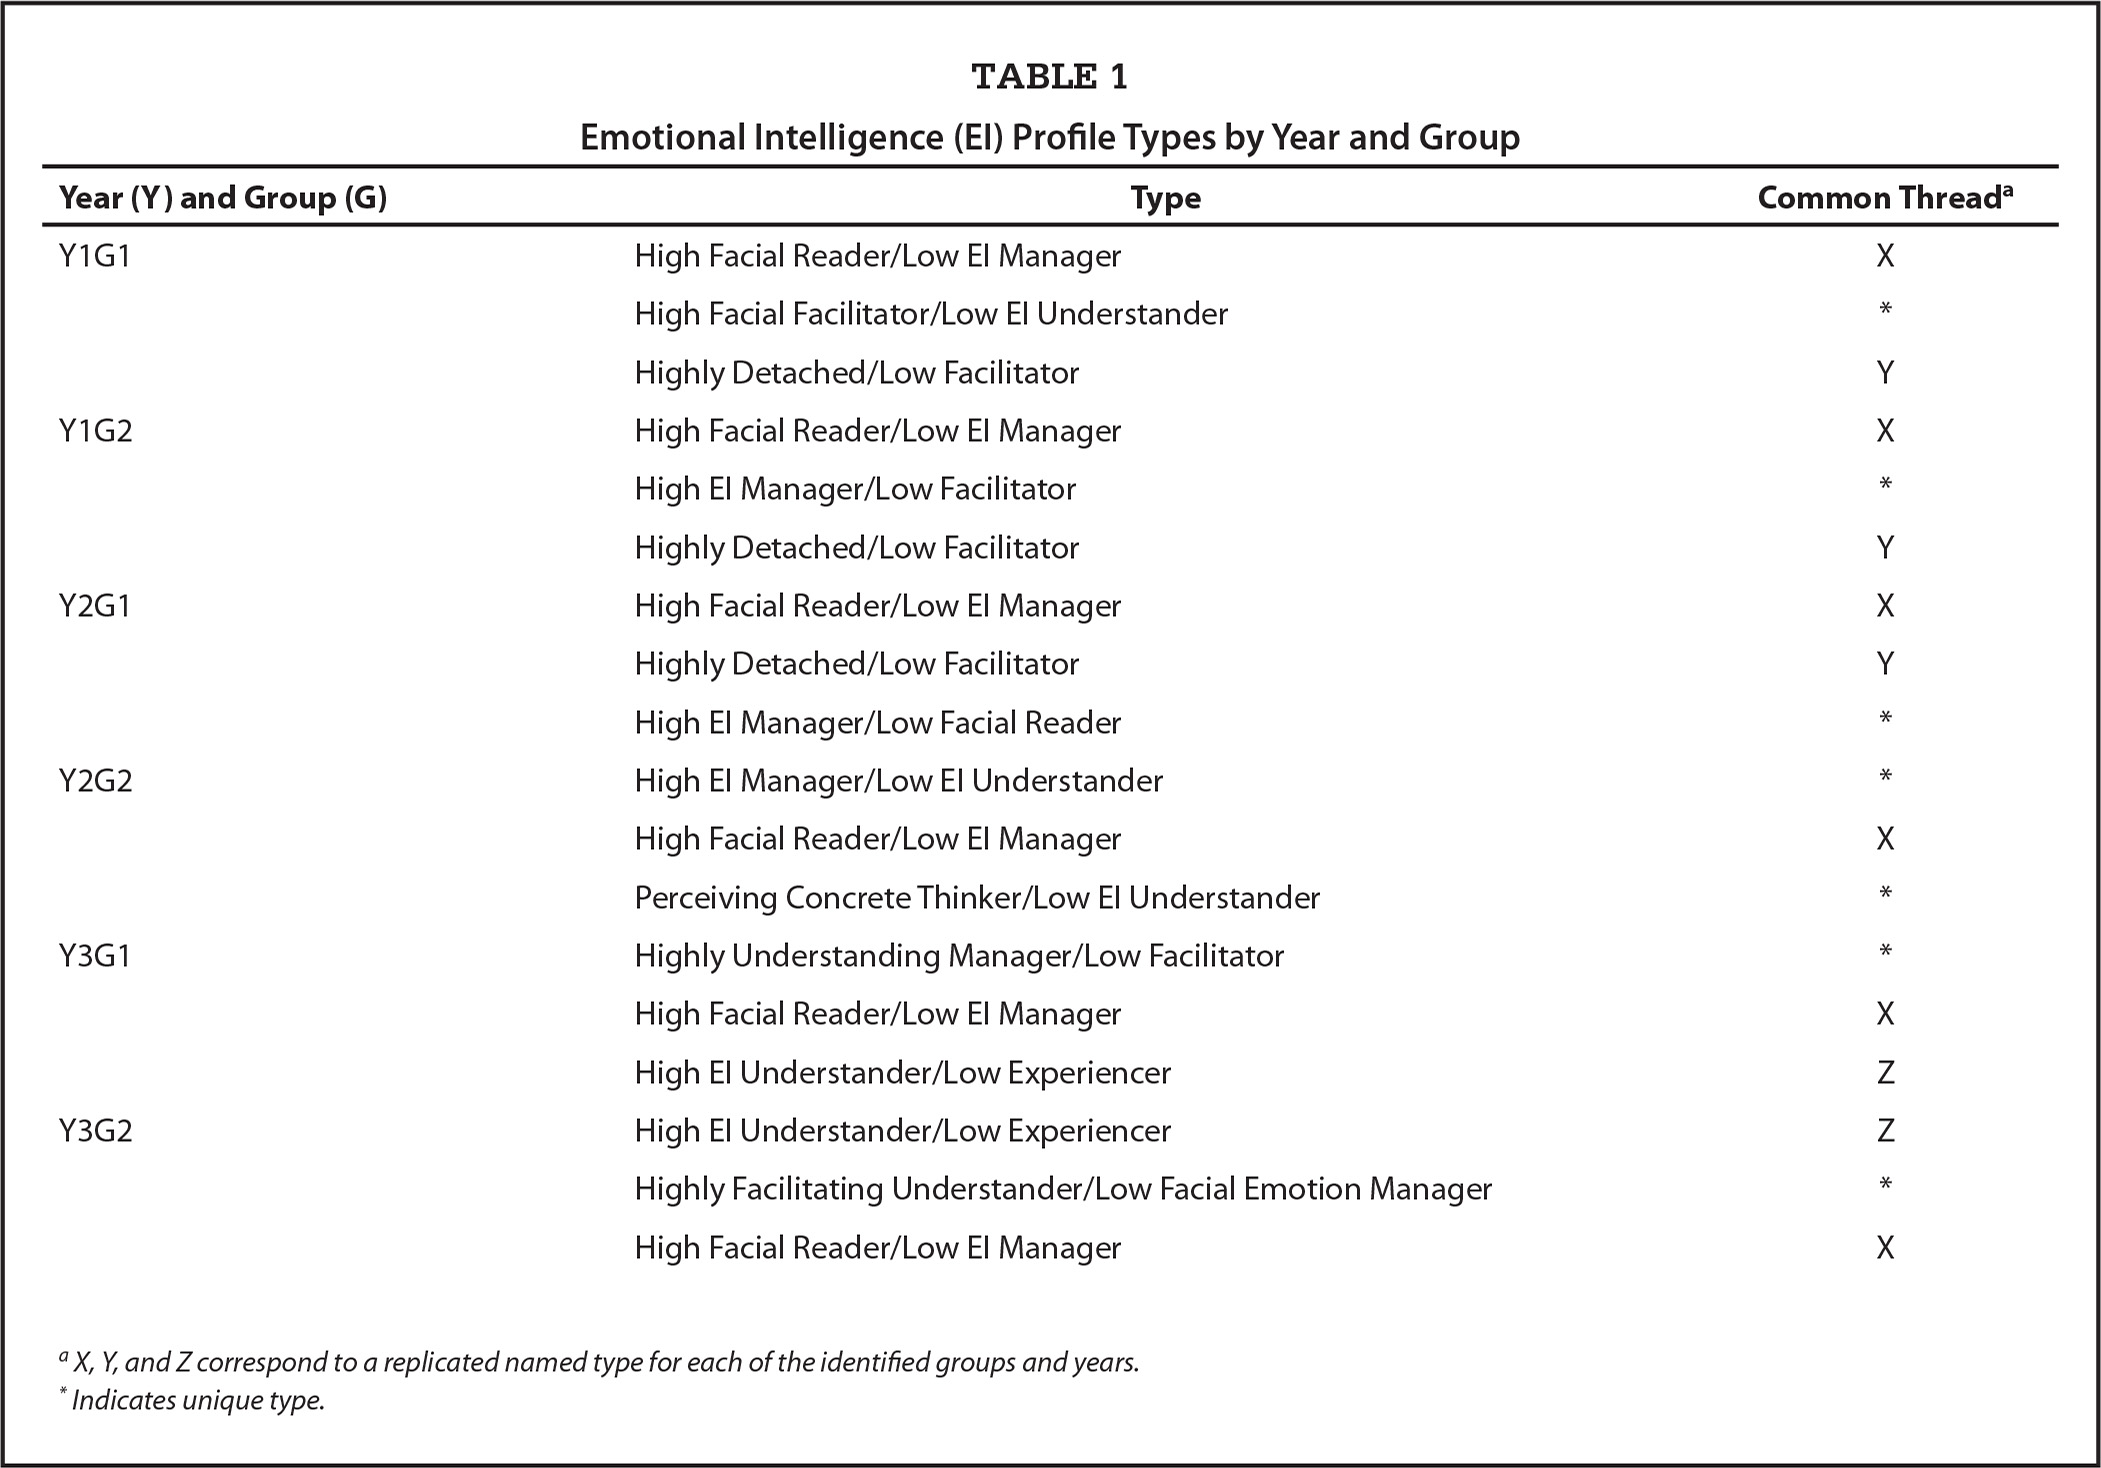 Emotional Intelligence (EI) Profile Types by Year and Group